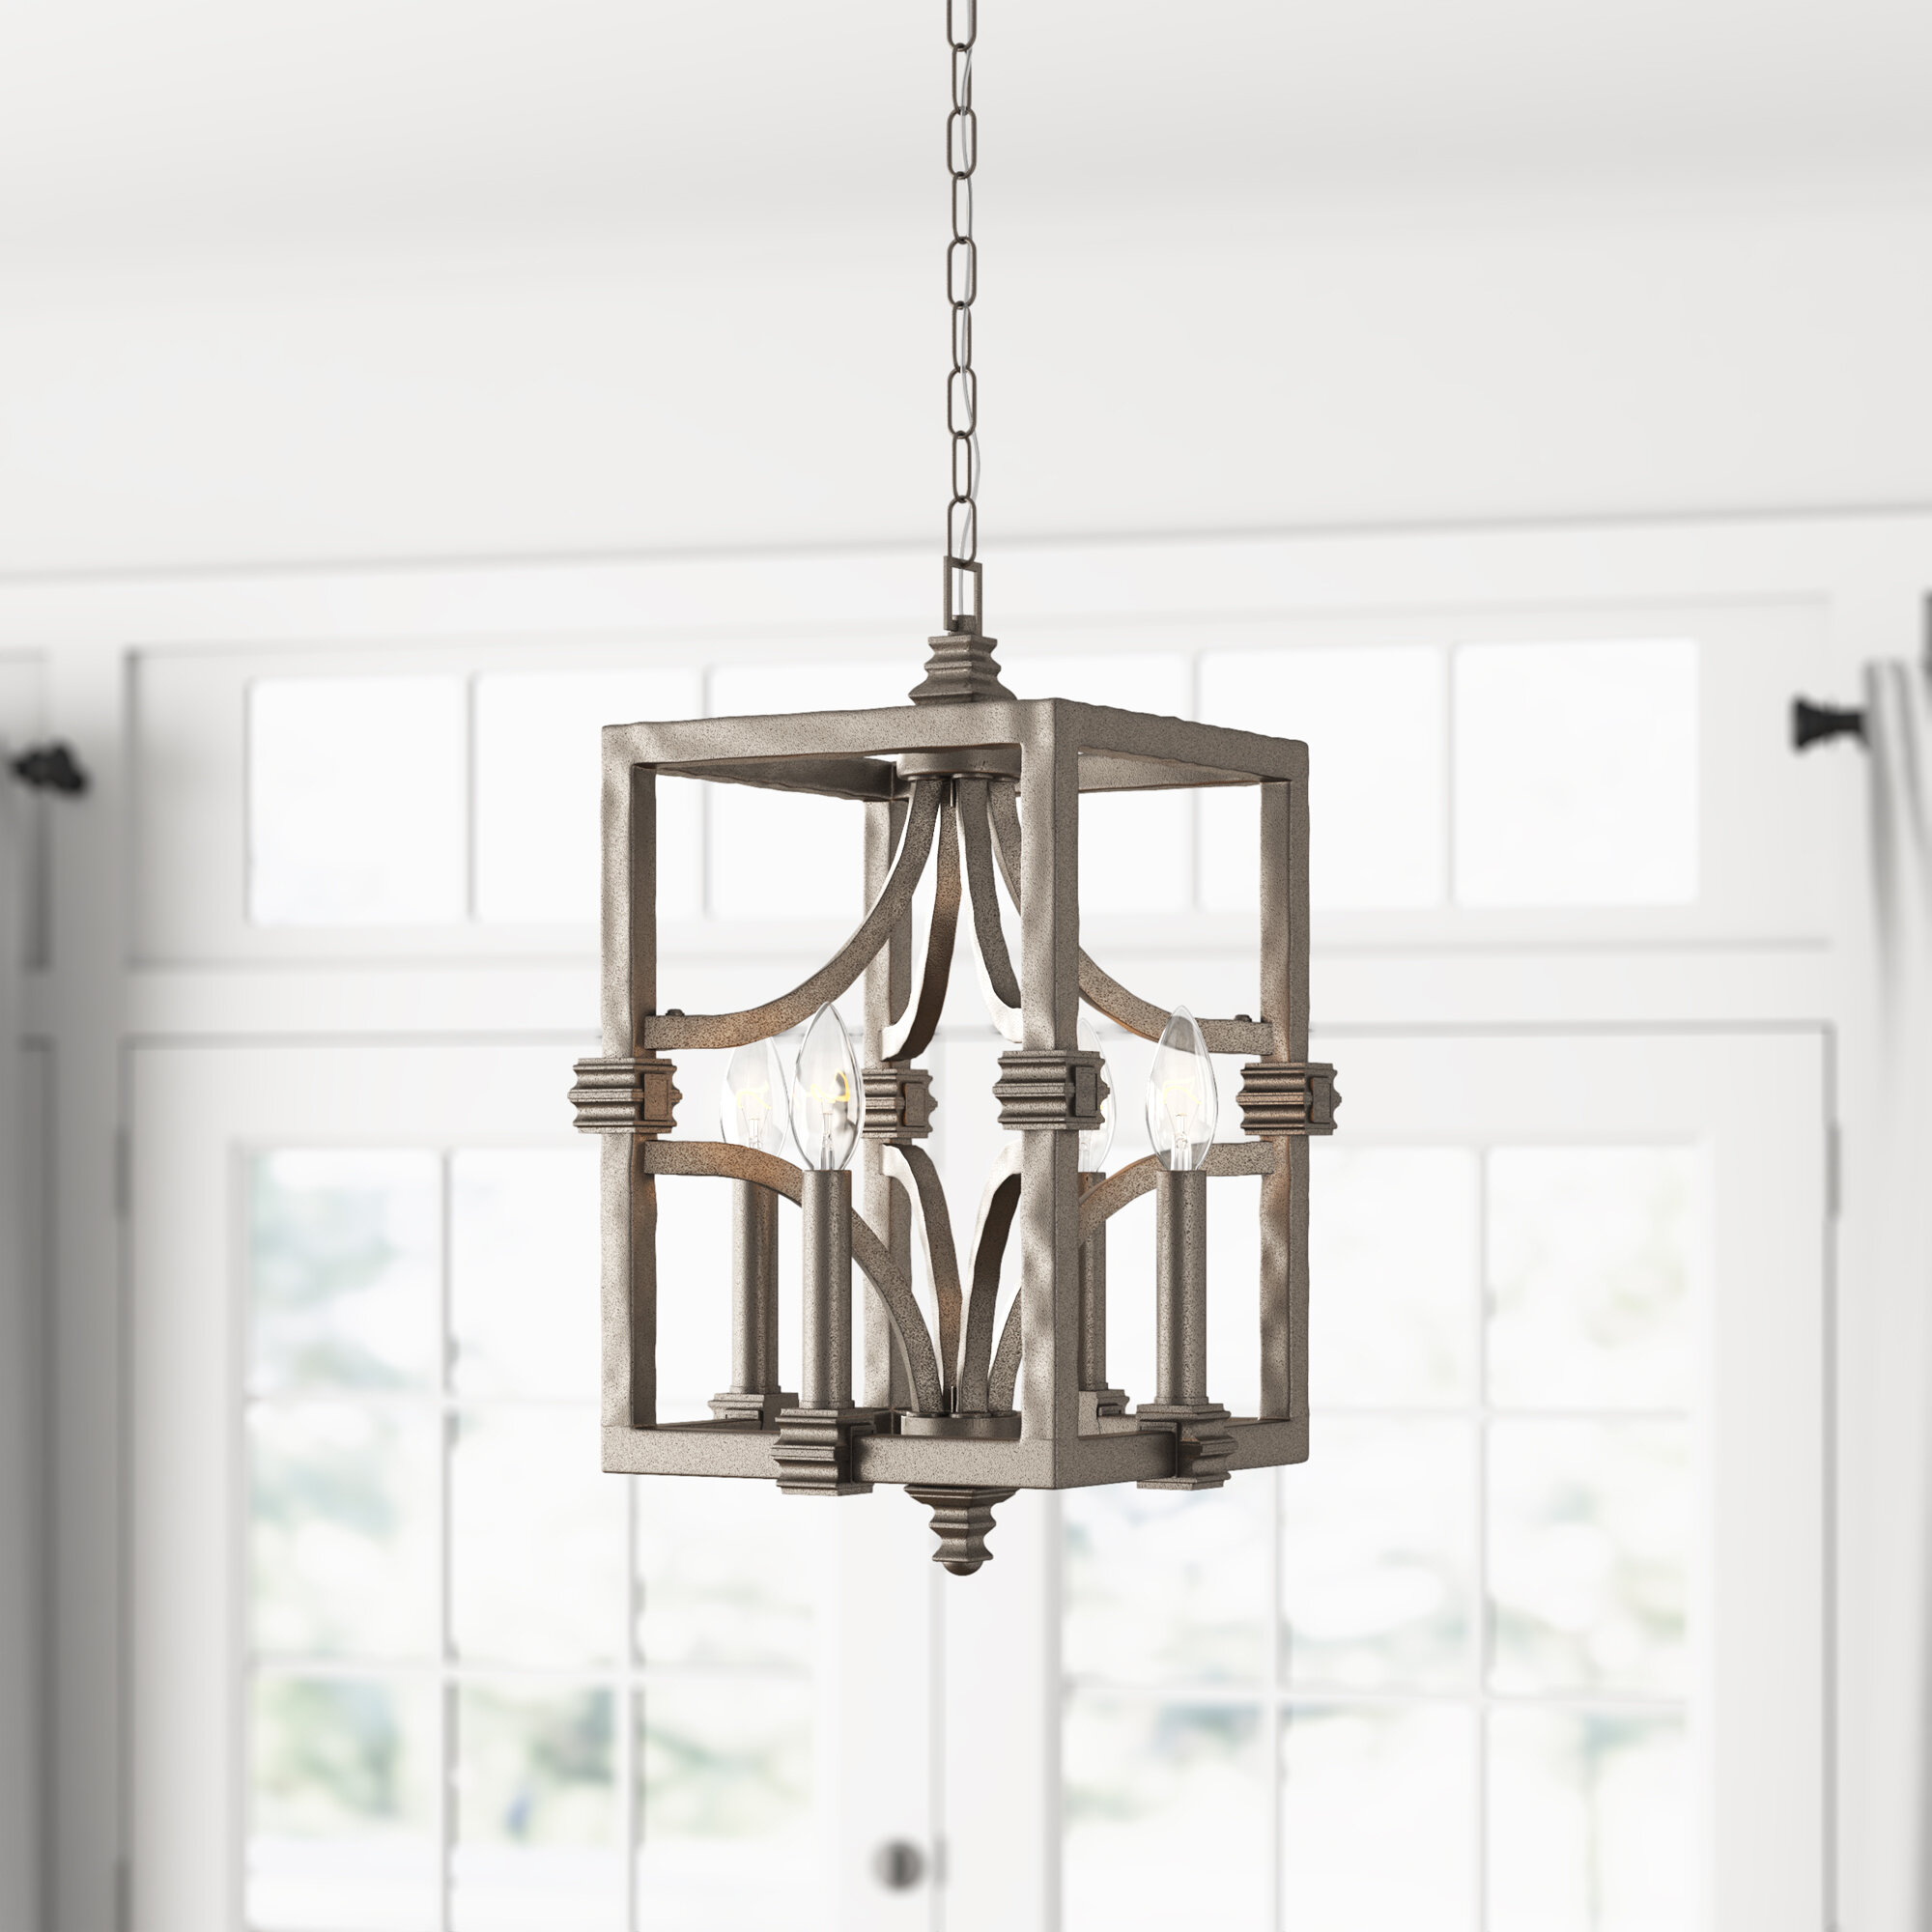 Freeburg 4 Light Lantern Square / Rectangle Pendant Inside Armande 4 Light Lantern Drum Pendants (View 6 of 30)